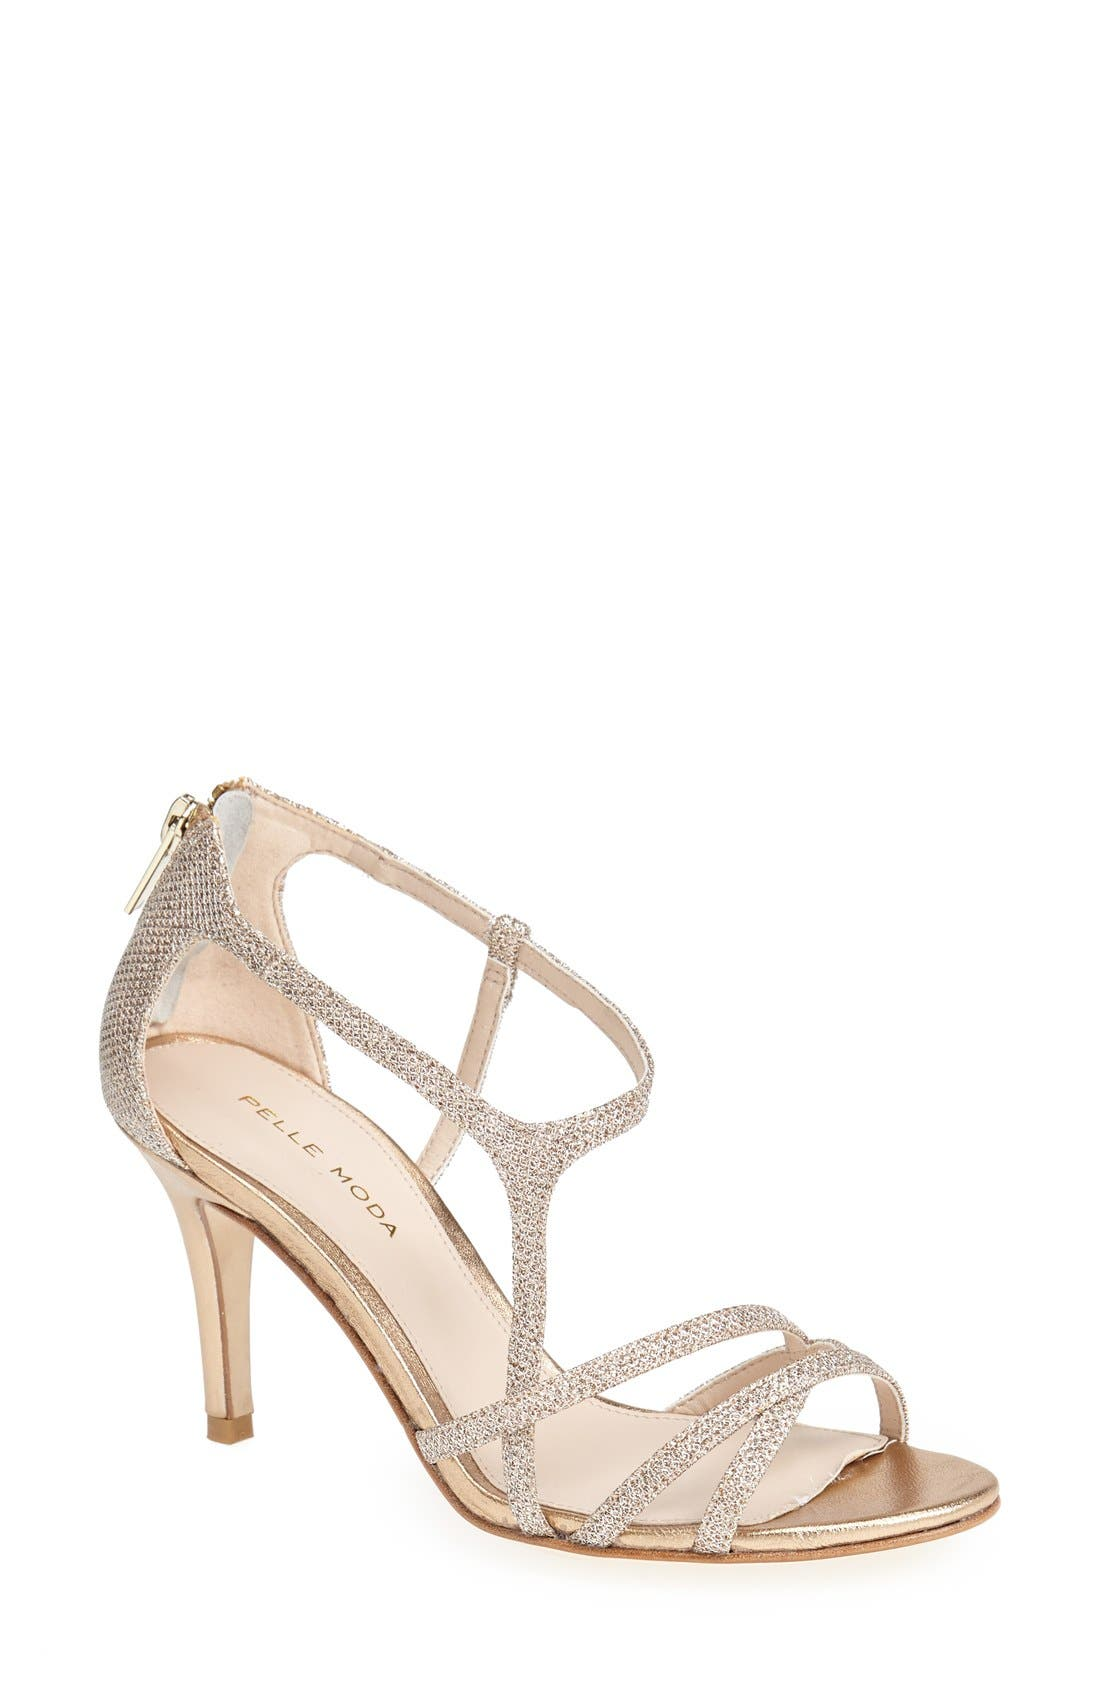 'Ruby' Strappy Sandal,                         Main,                         color, Platinum Gold